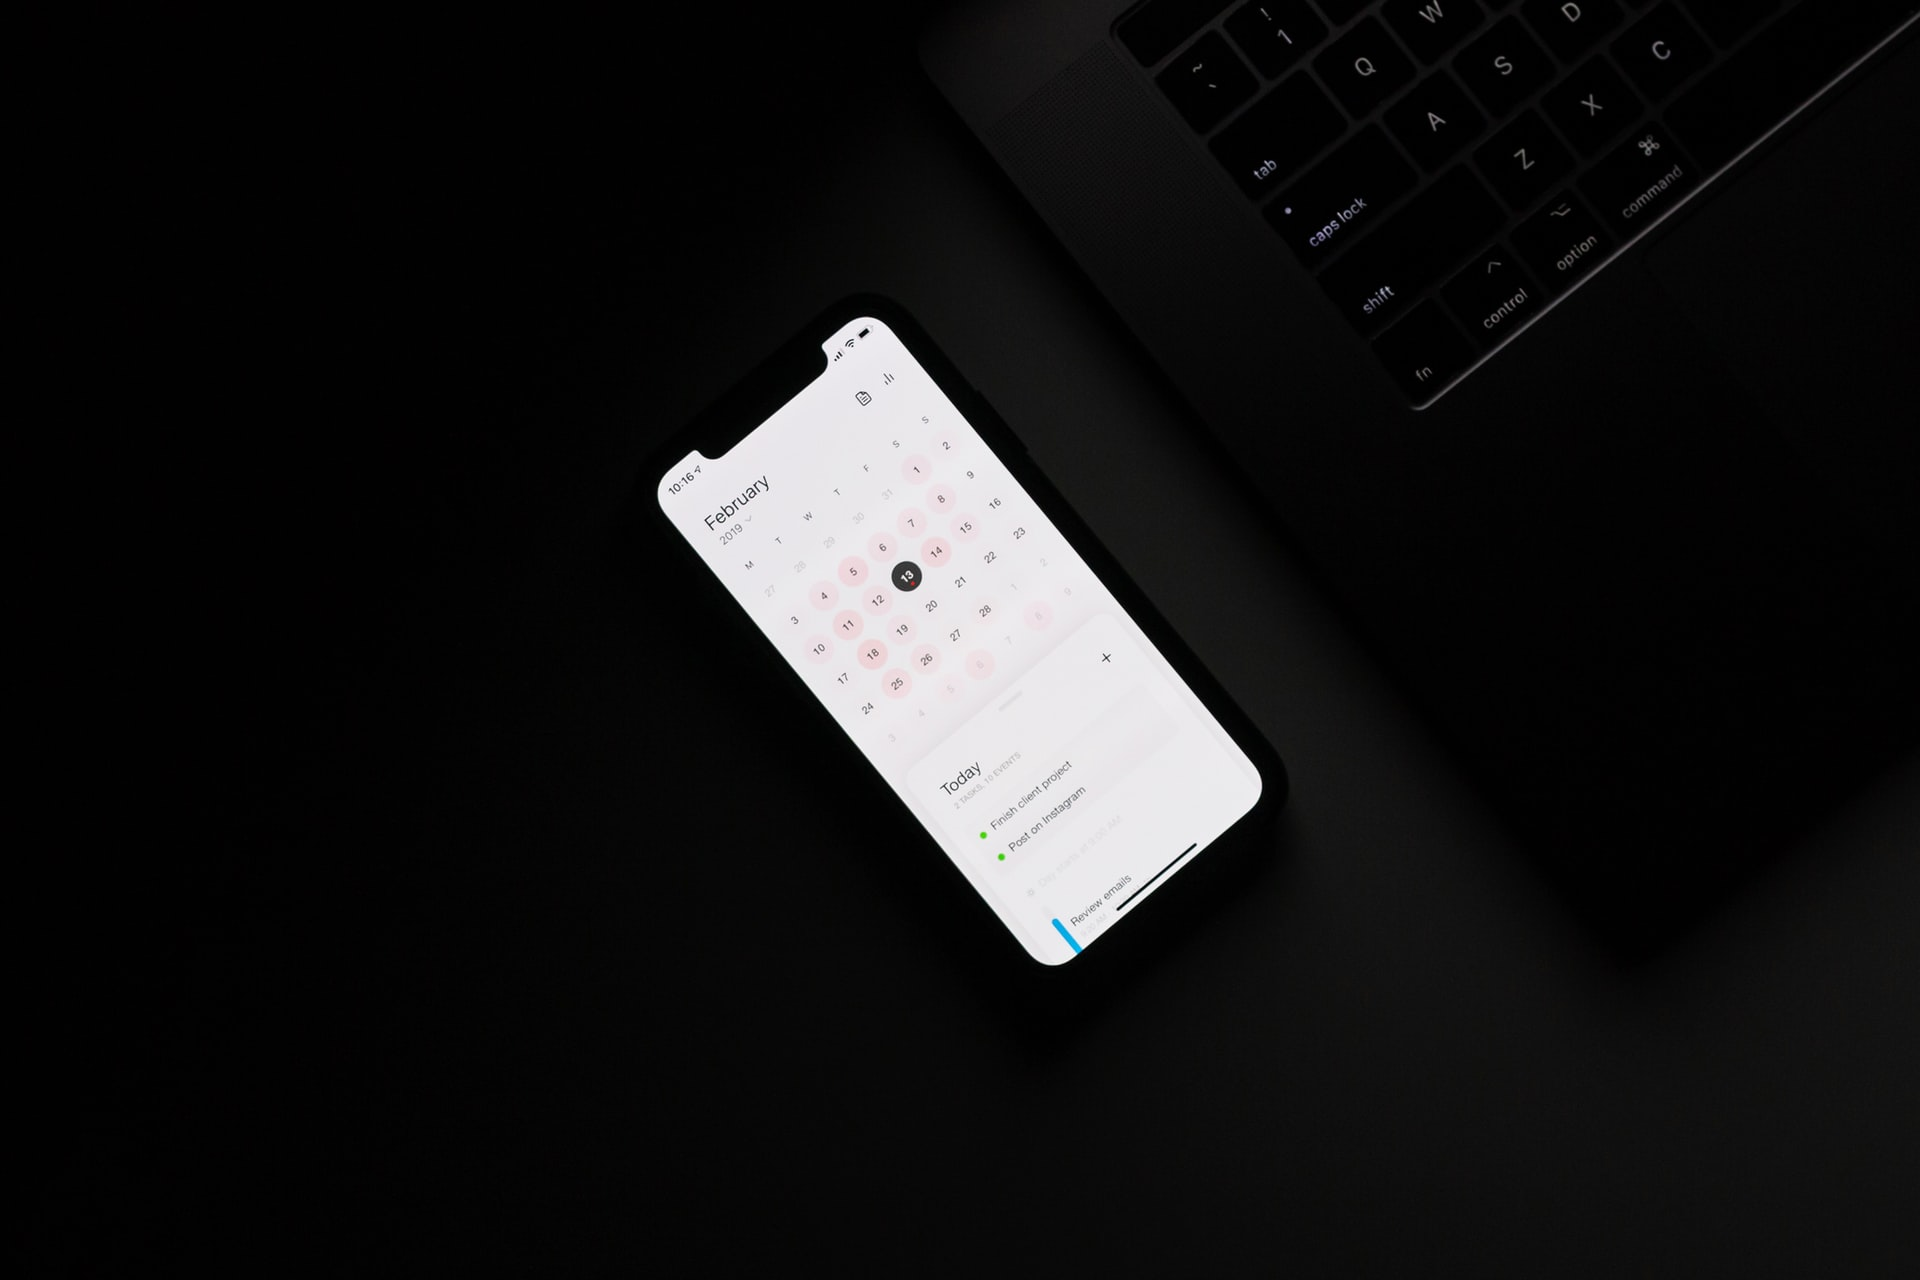 Black Android phone displays a calendar app in a dark room. Photo courtesy of Ales Nesetril on Unsplash.